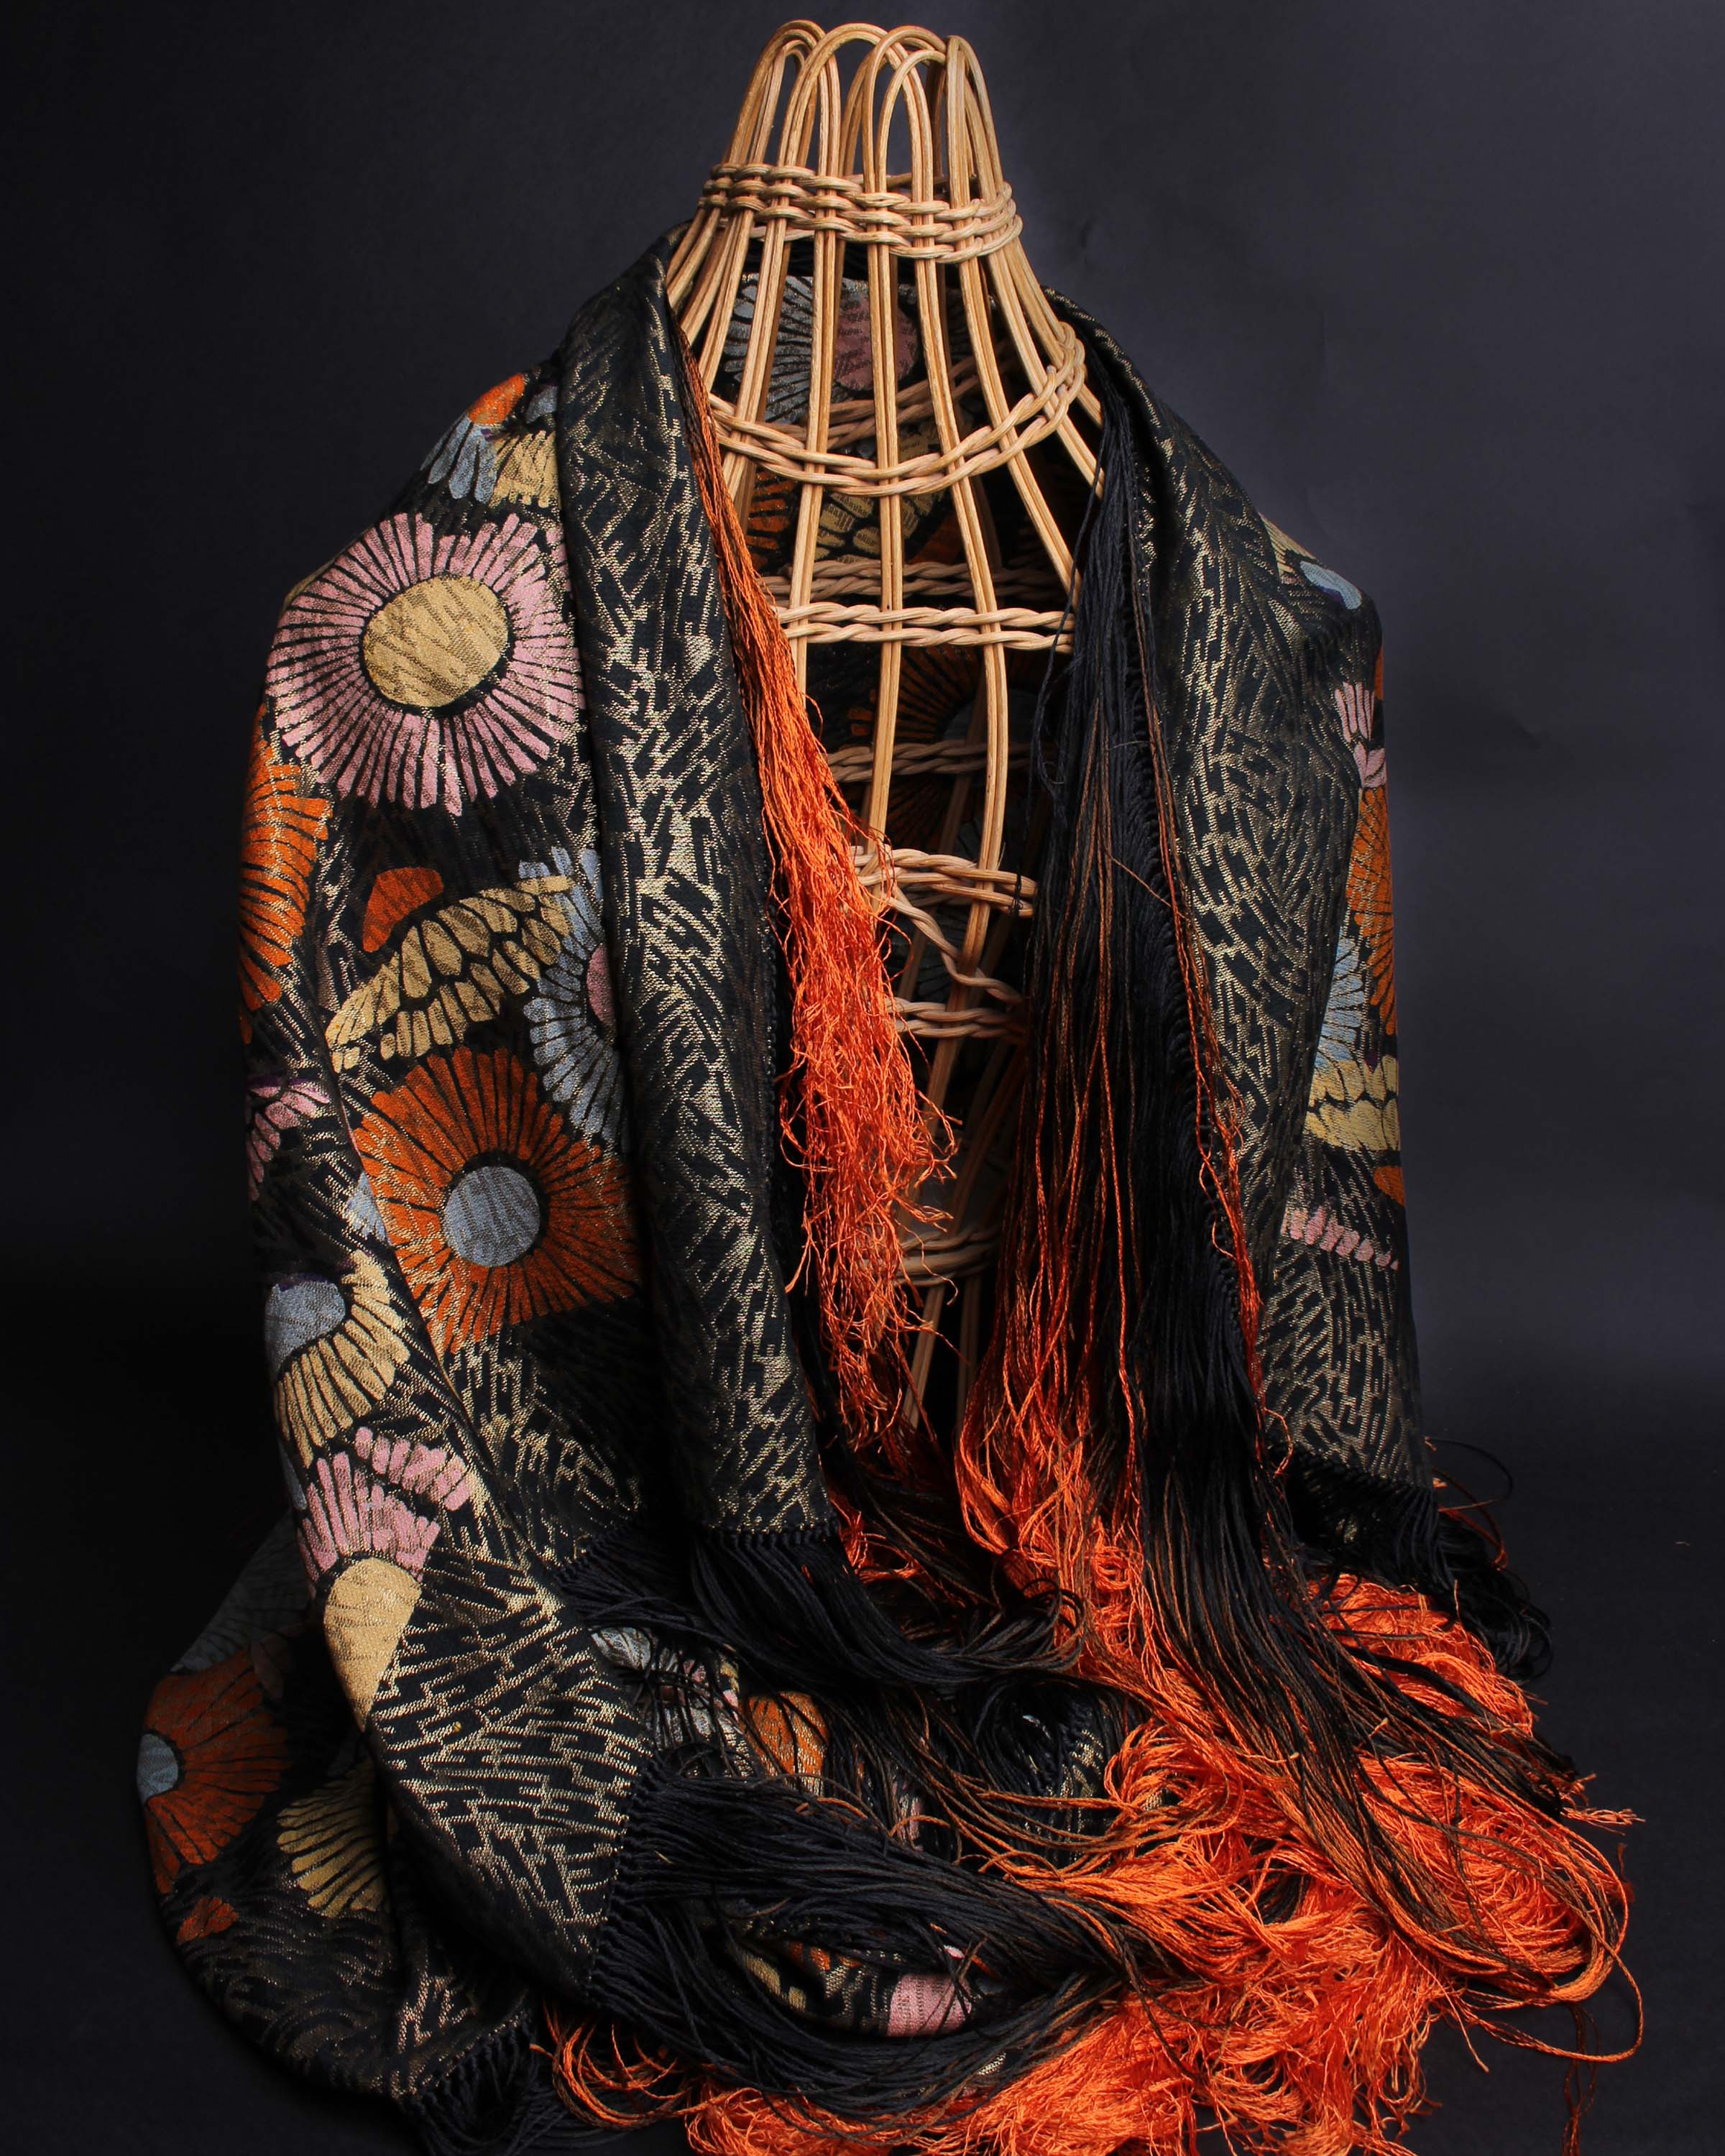 Lot 46 - An early 20th Century lamé shawl with a black and orange ombre fringe, decorated with bold pattern